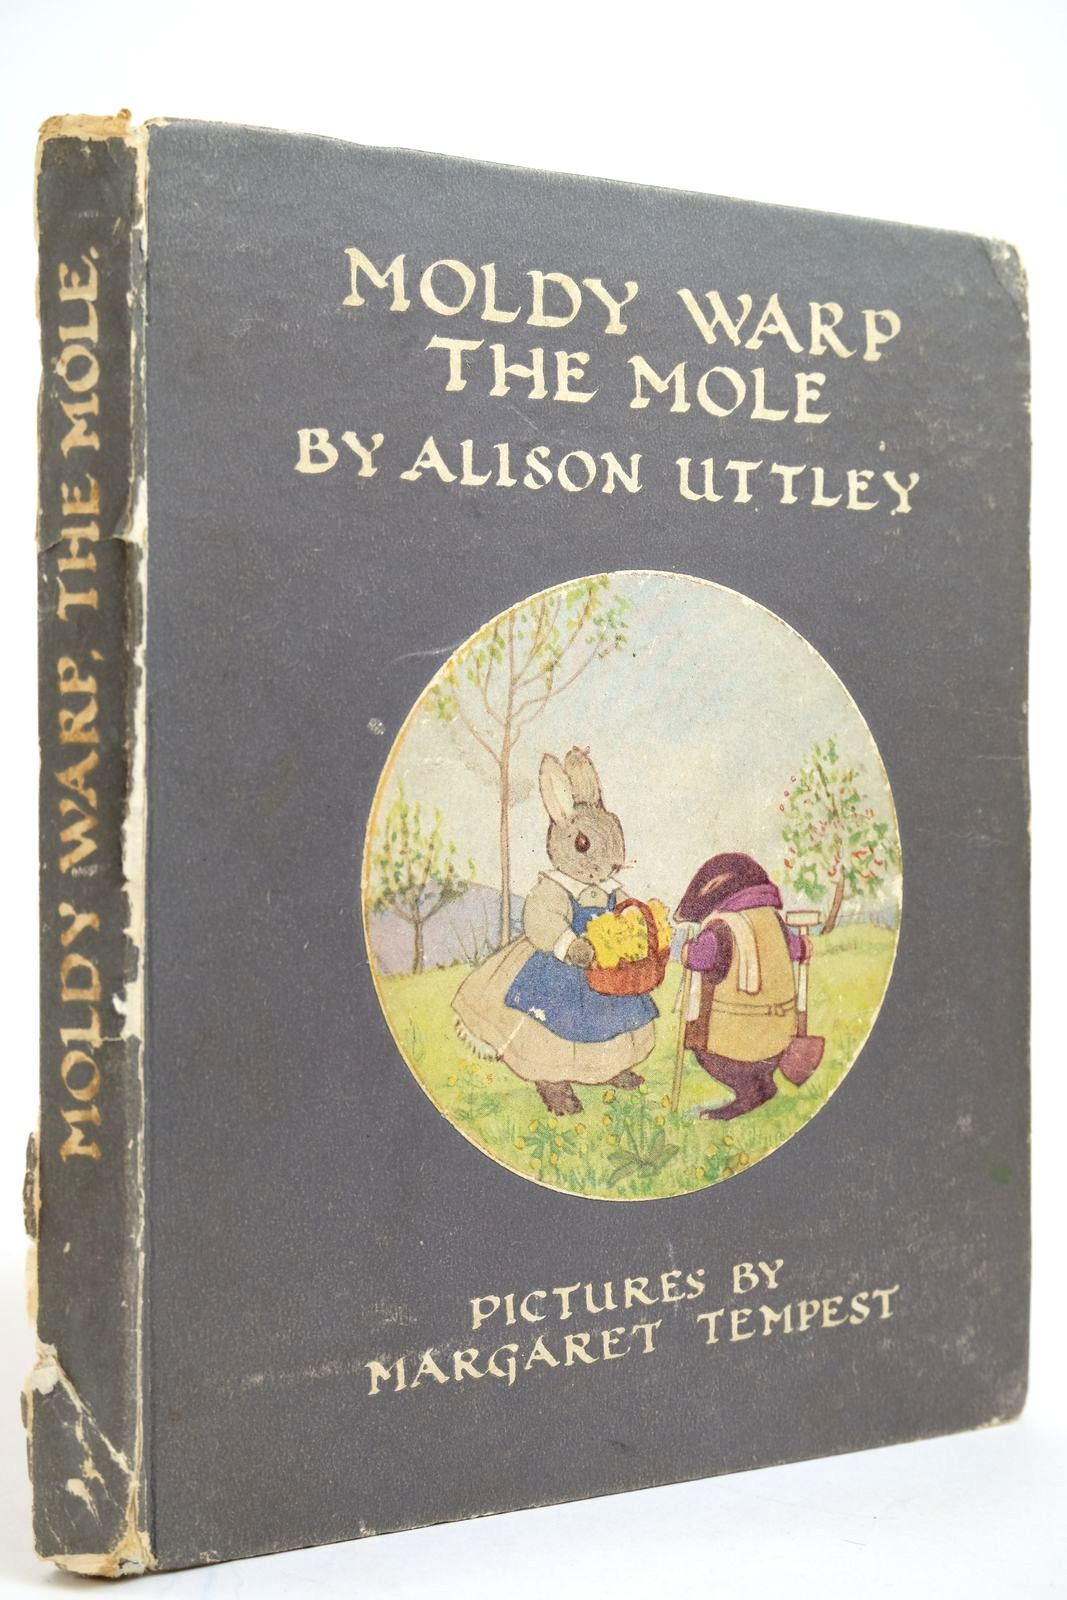 Photo of MOLDY WARP THE MOLE written by Uttley, Alison illustrated by Tempest, Margaret published by Collins (STOCK CODE: 2135088)  for sale by Stella & Rose's Books